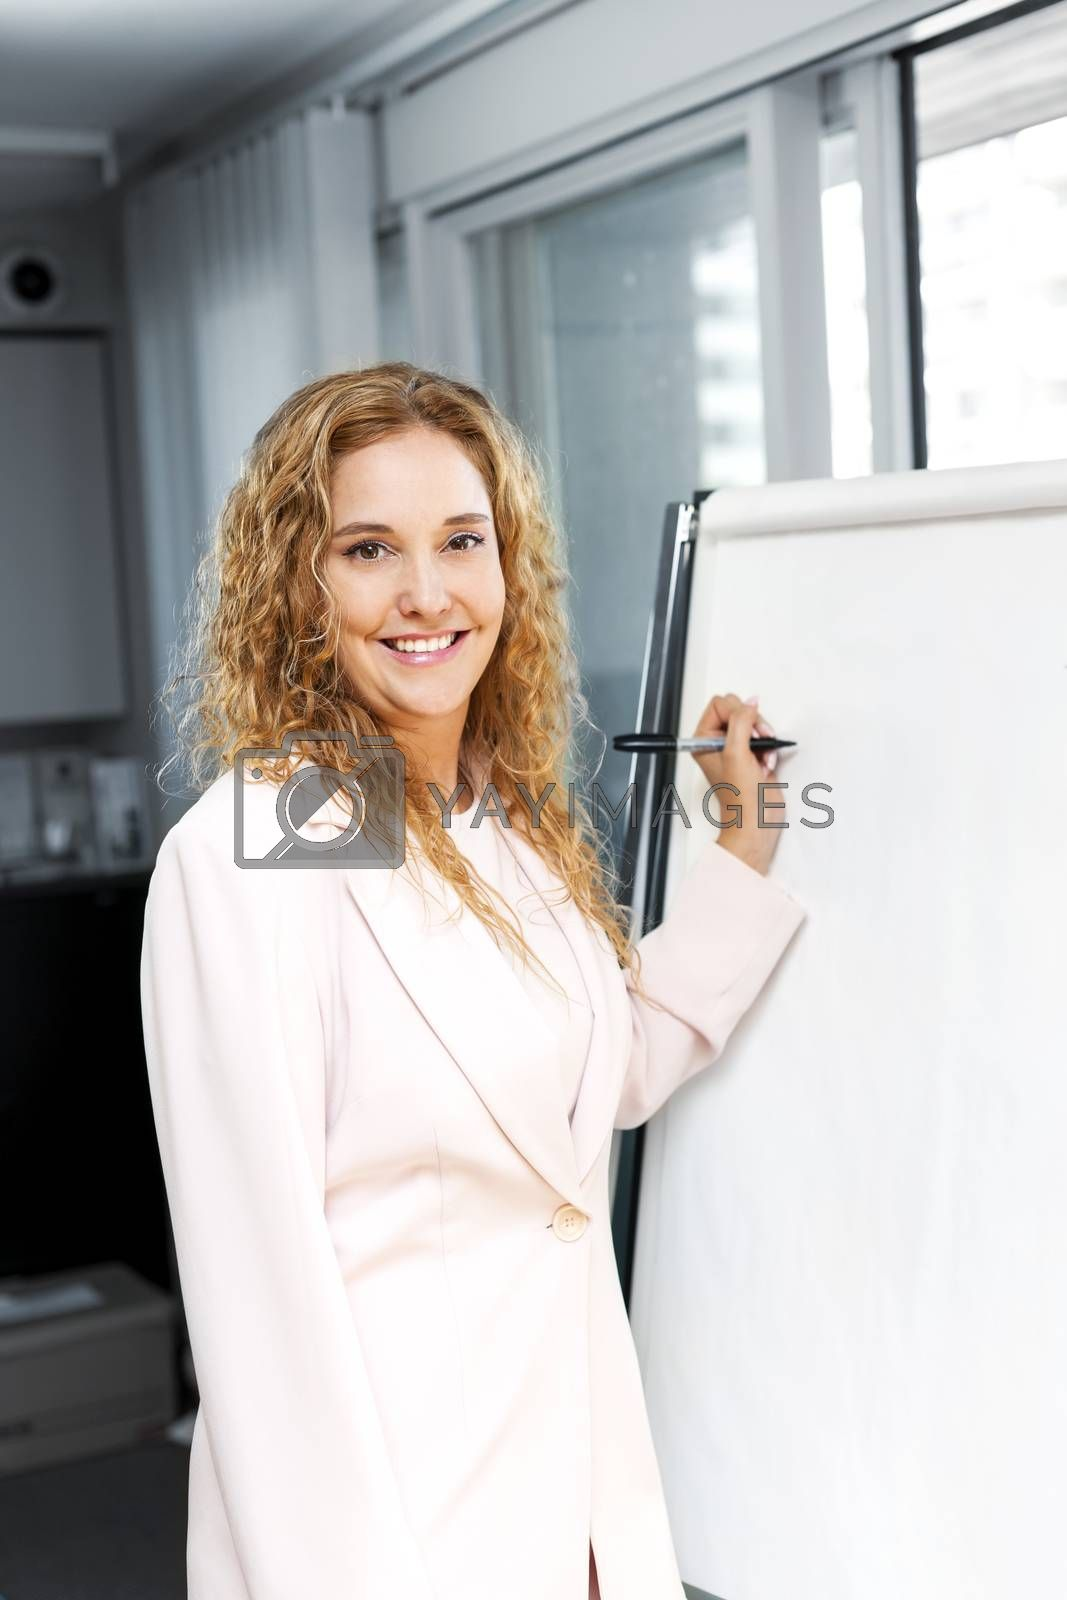 Smiling businesswoman writing on flip chart paper in office